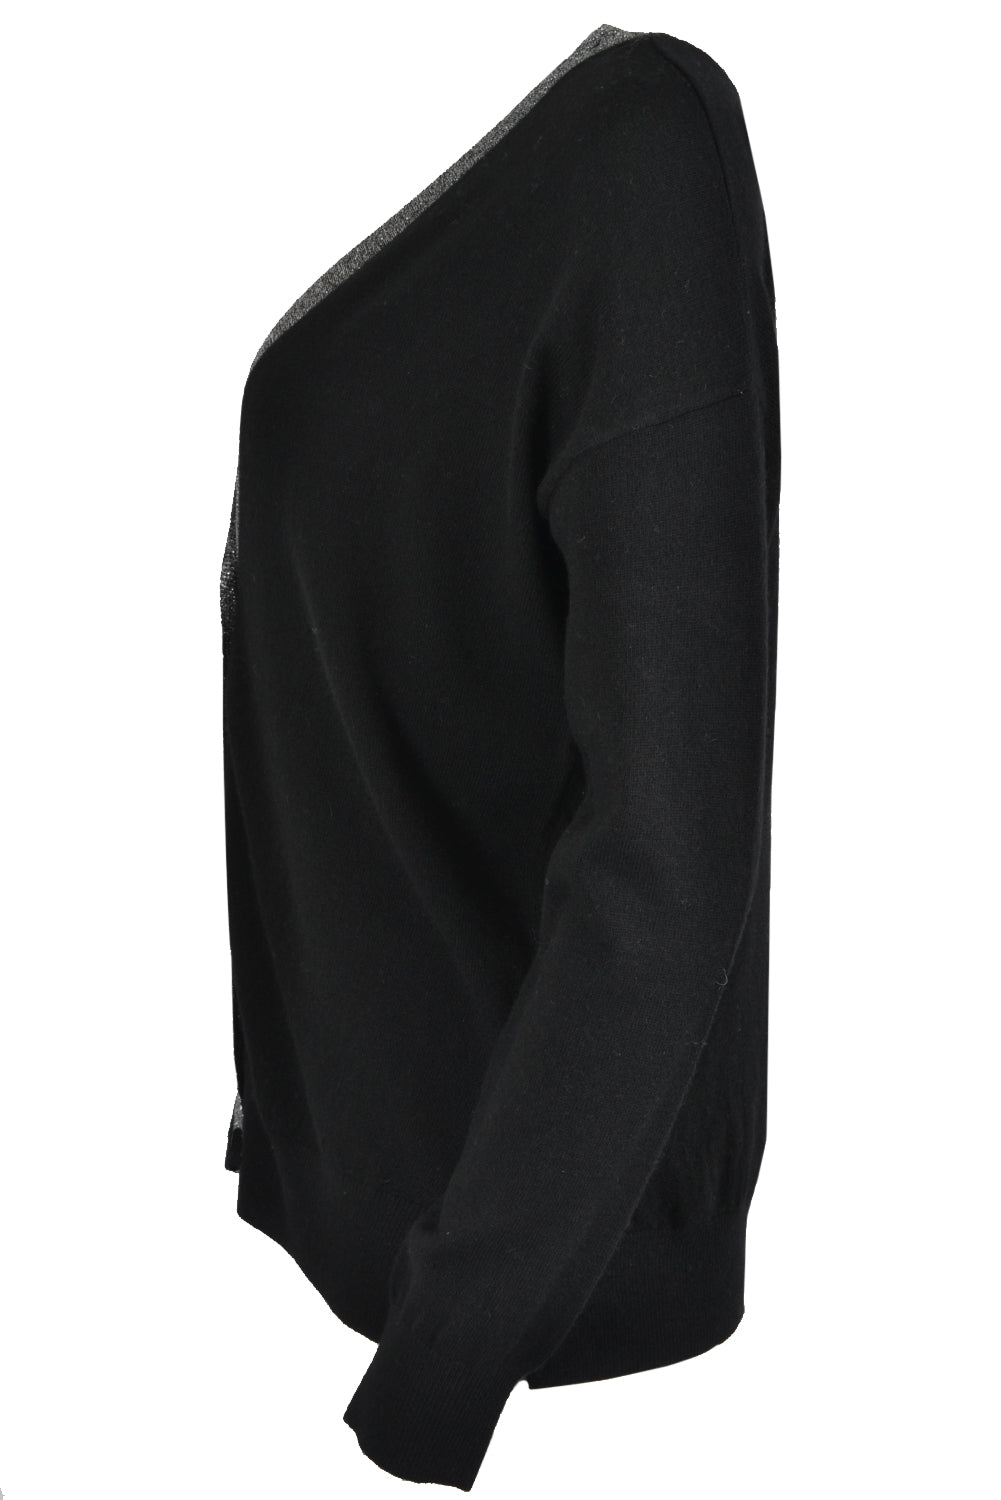 Jeff LUCAS Lurex V Neck Cardigan Black